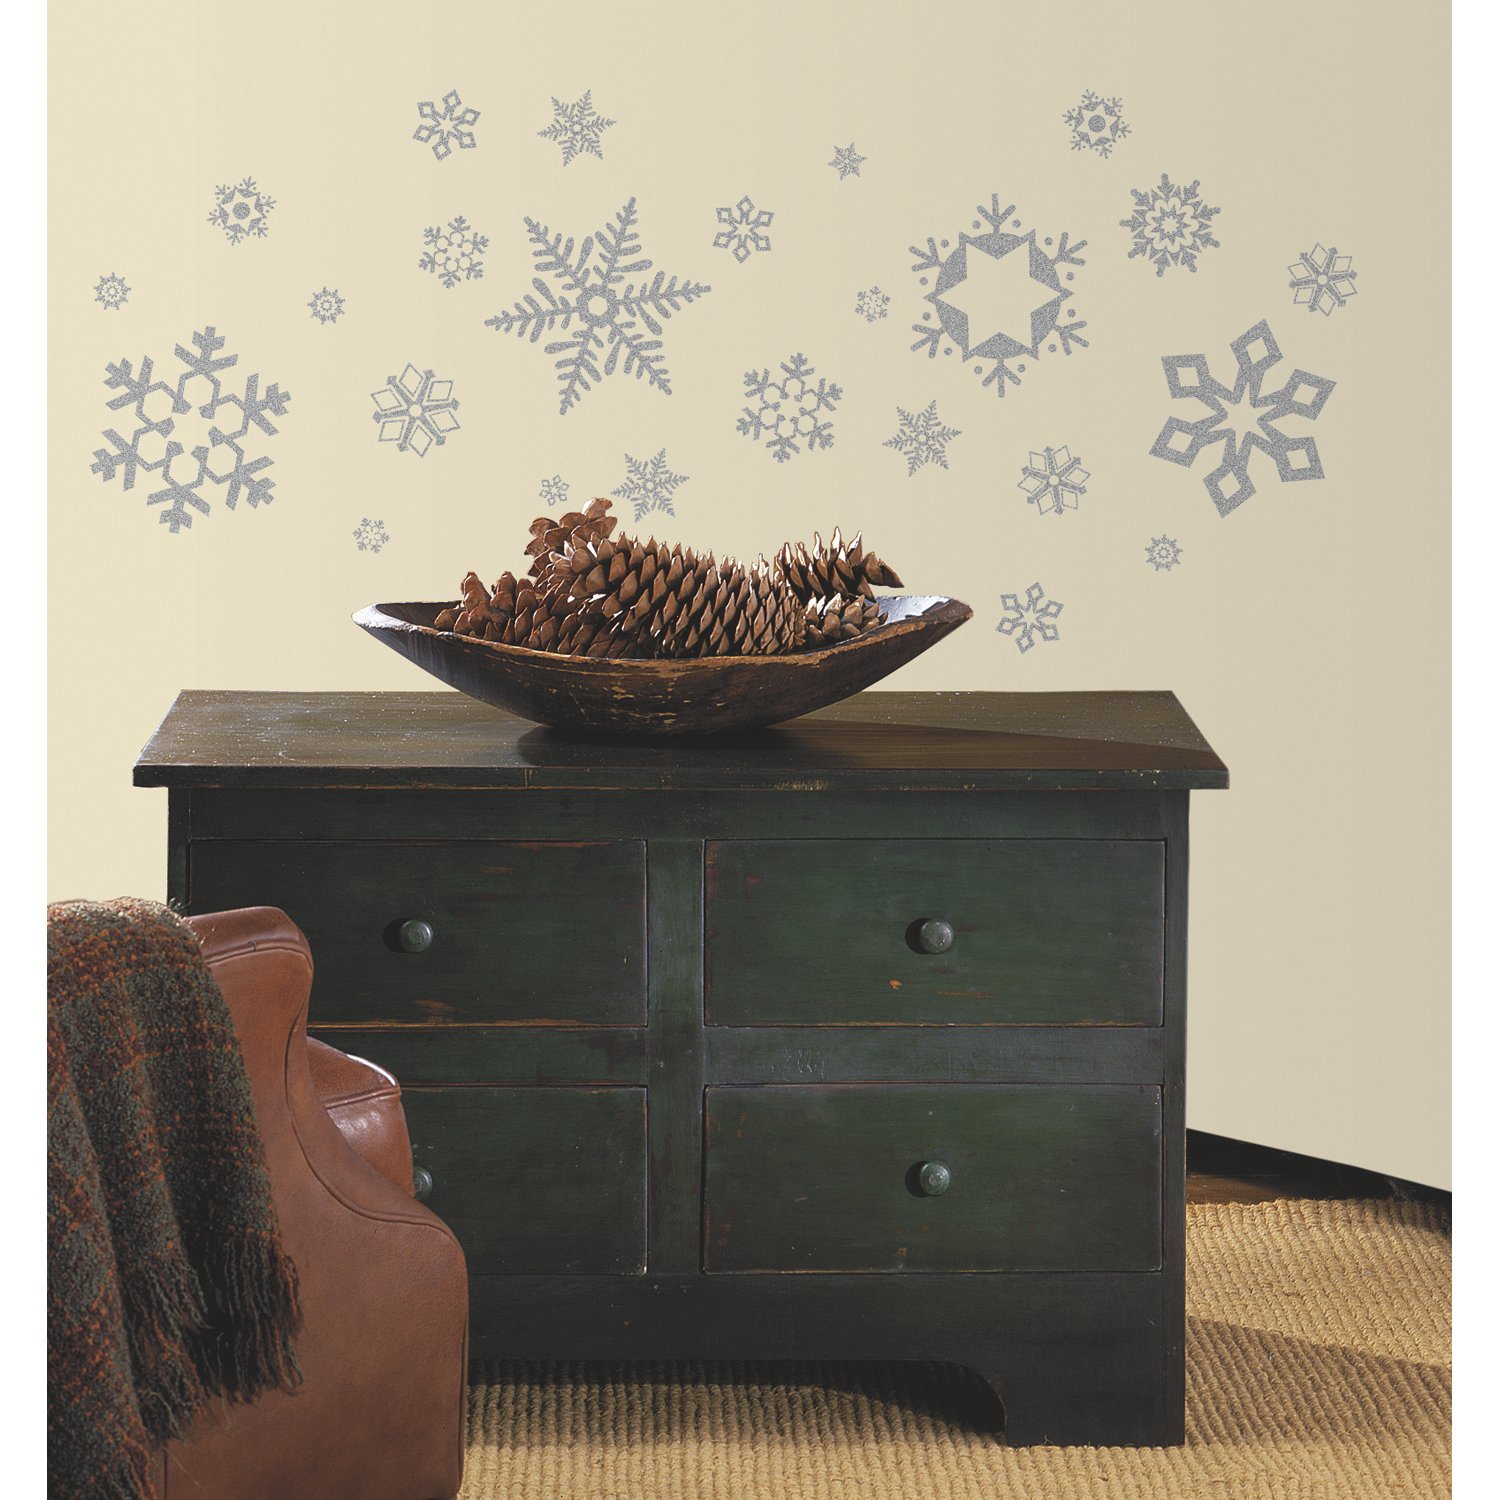 RoomMates RMK1413SCS Glitter Snowflakes Peel and Stick Wall Decals, 47 Count